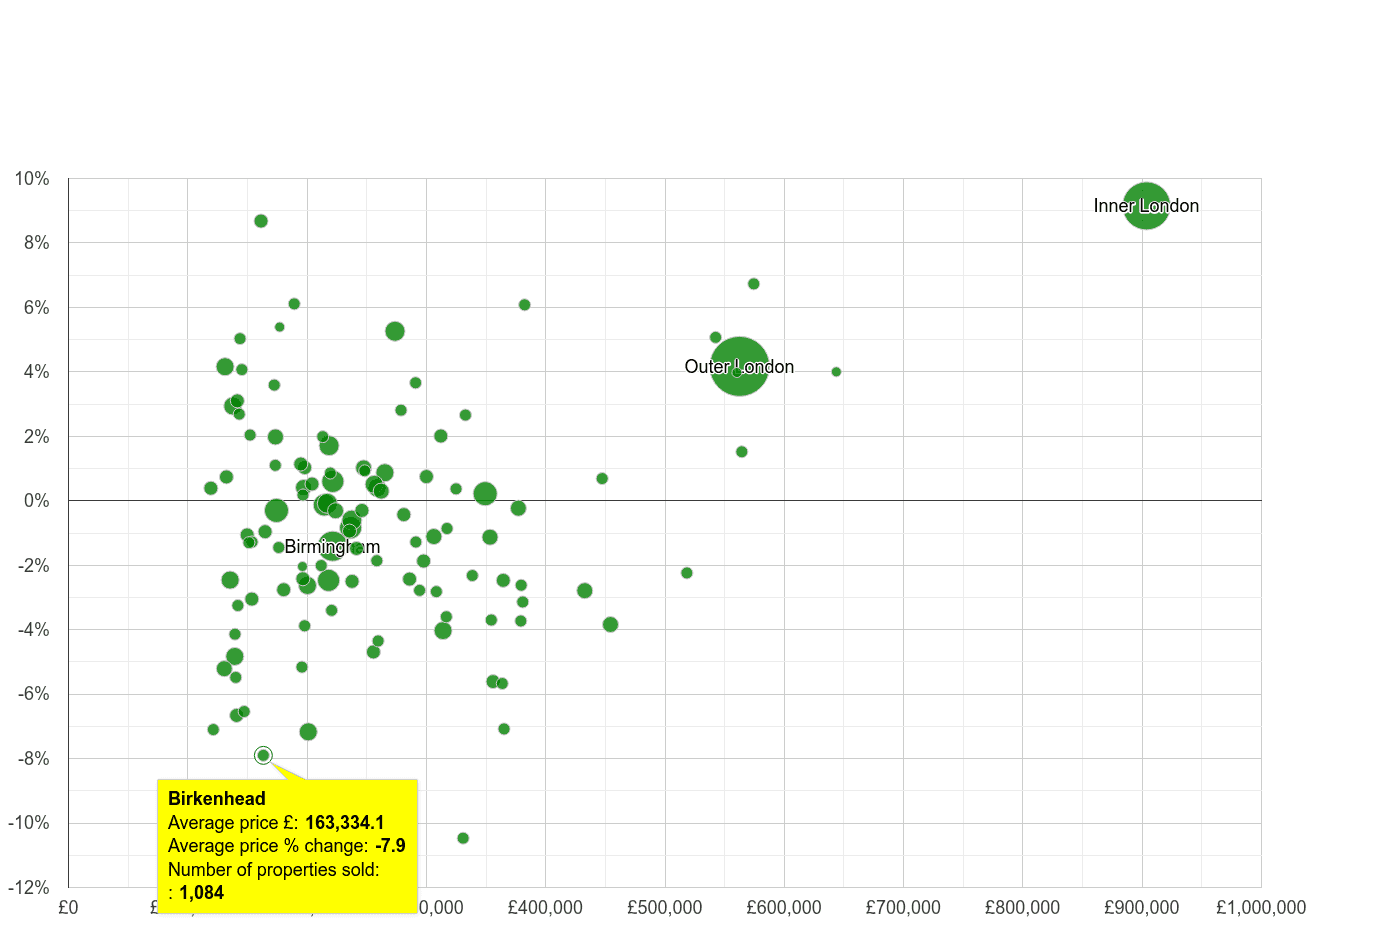 Birkenhead house prices compared to other cities